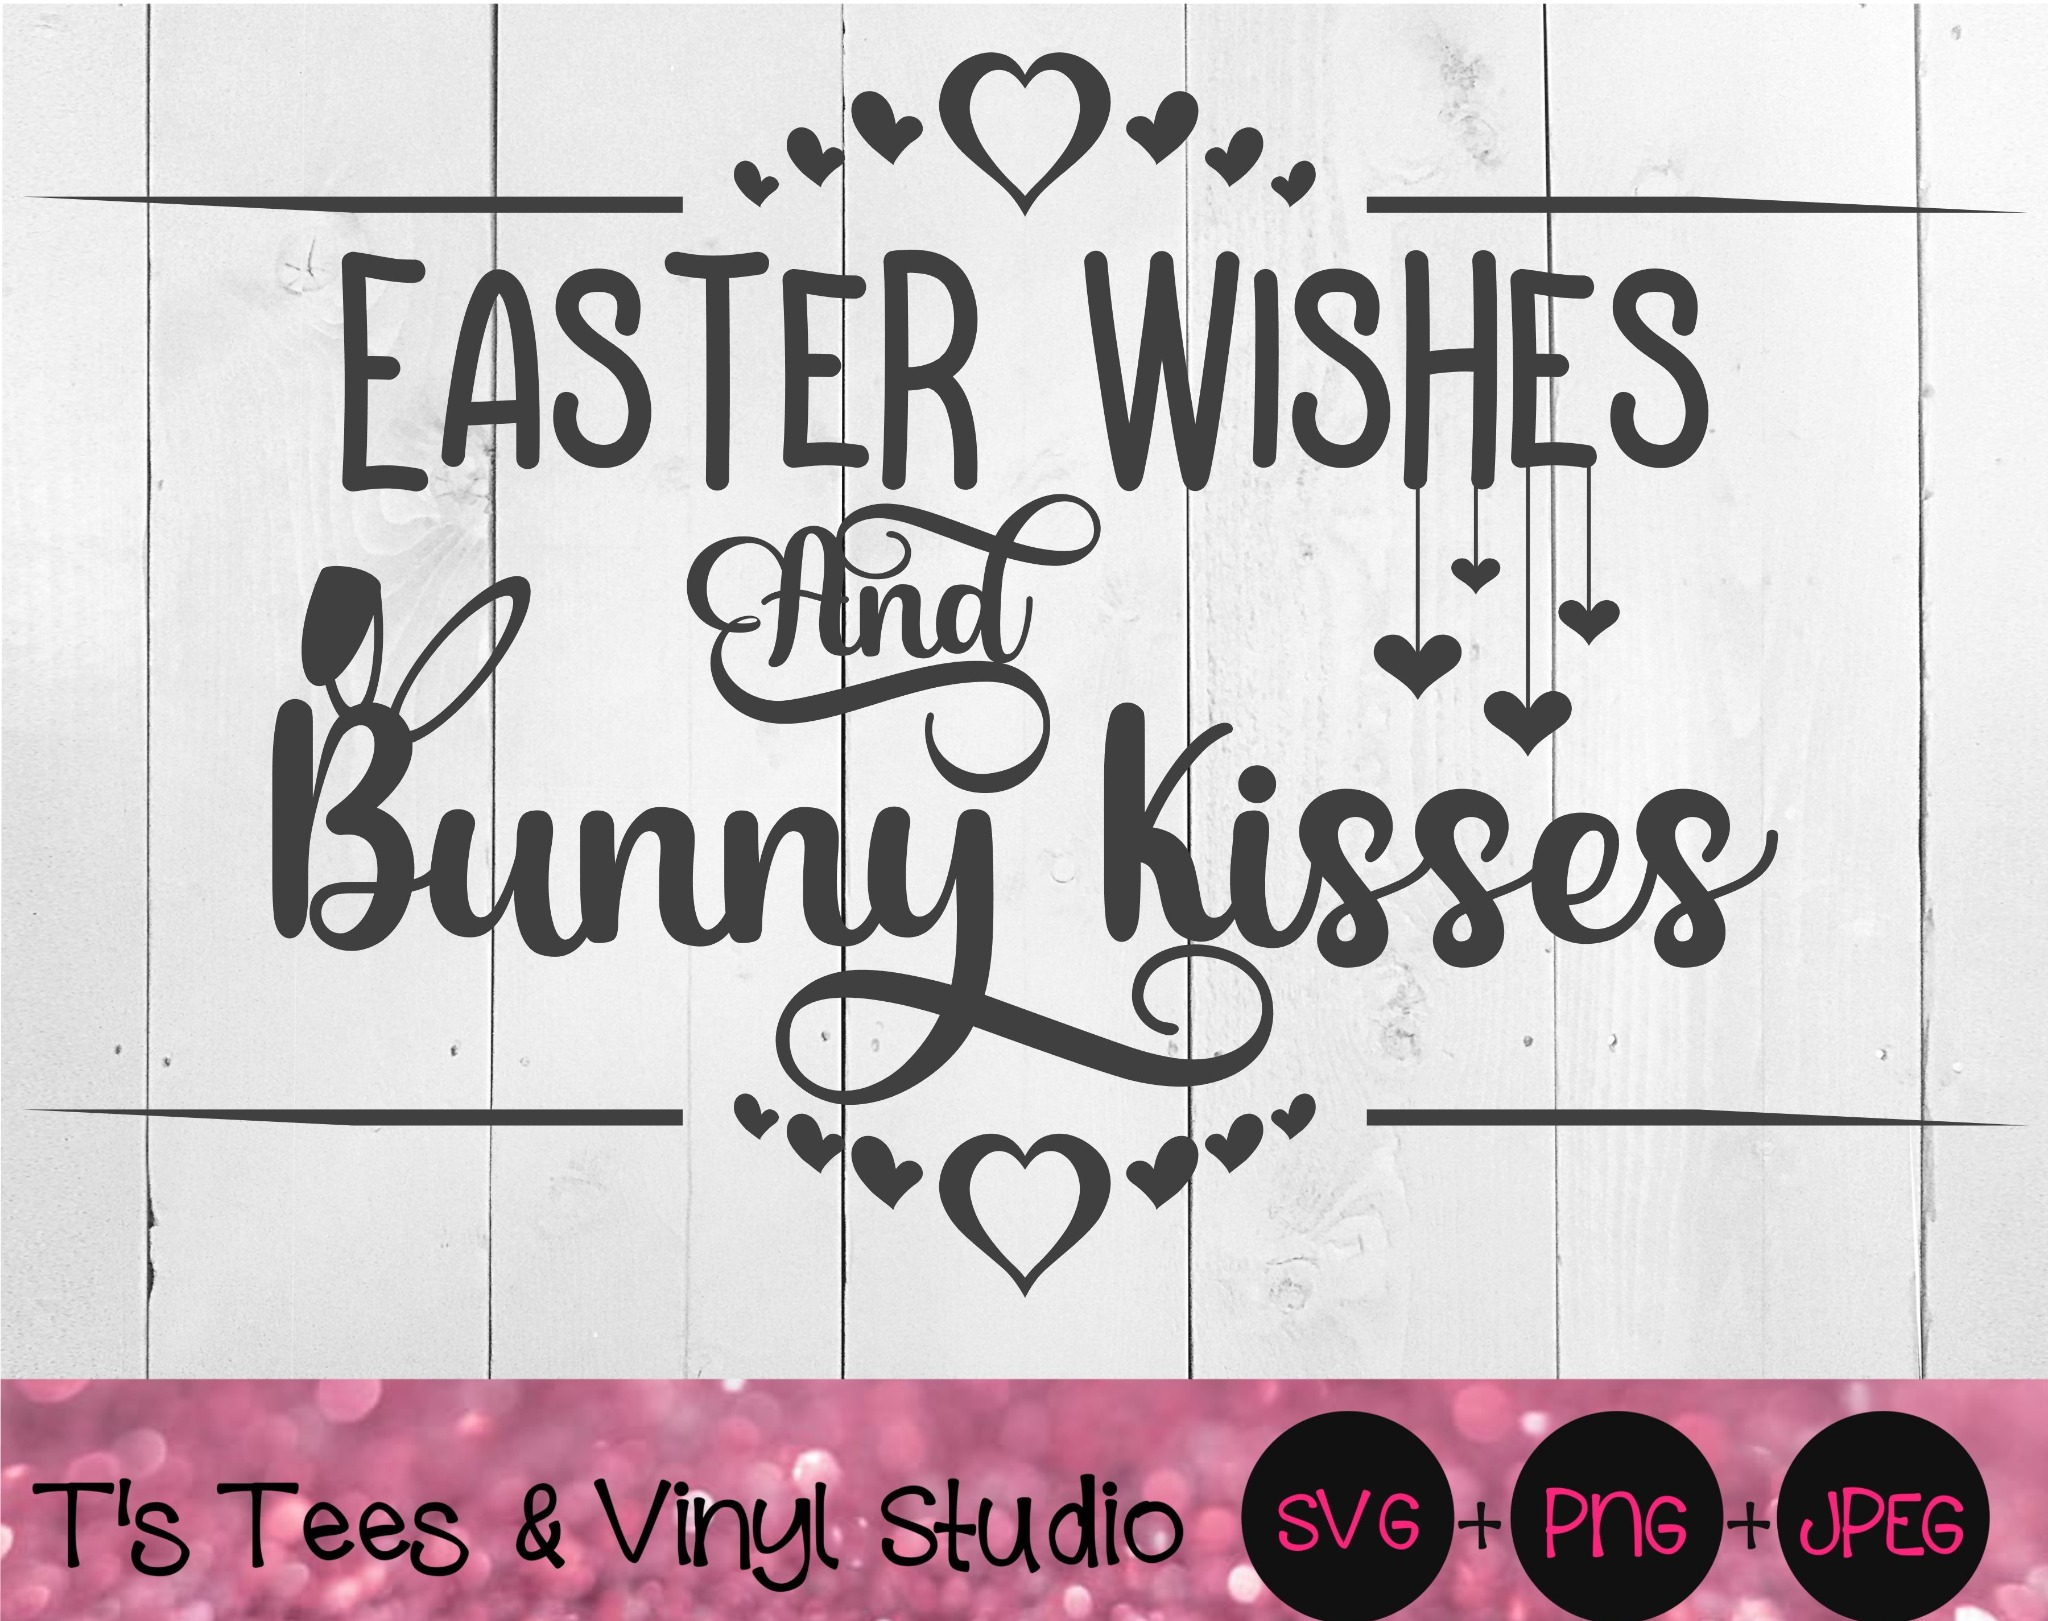 Easter Wishes And Bunny Kisses Svg, Happy Easter, He Is Risen, Bunny Kisses, Easter Bunny, Easter Pn